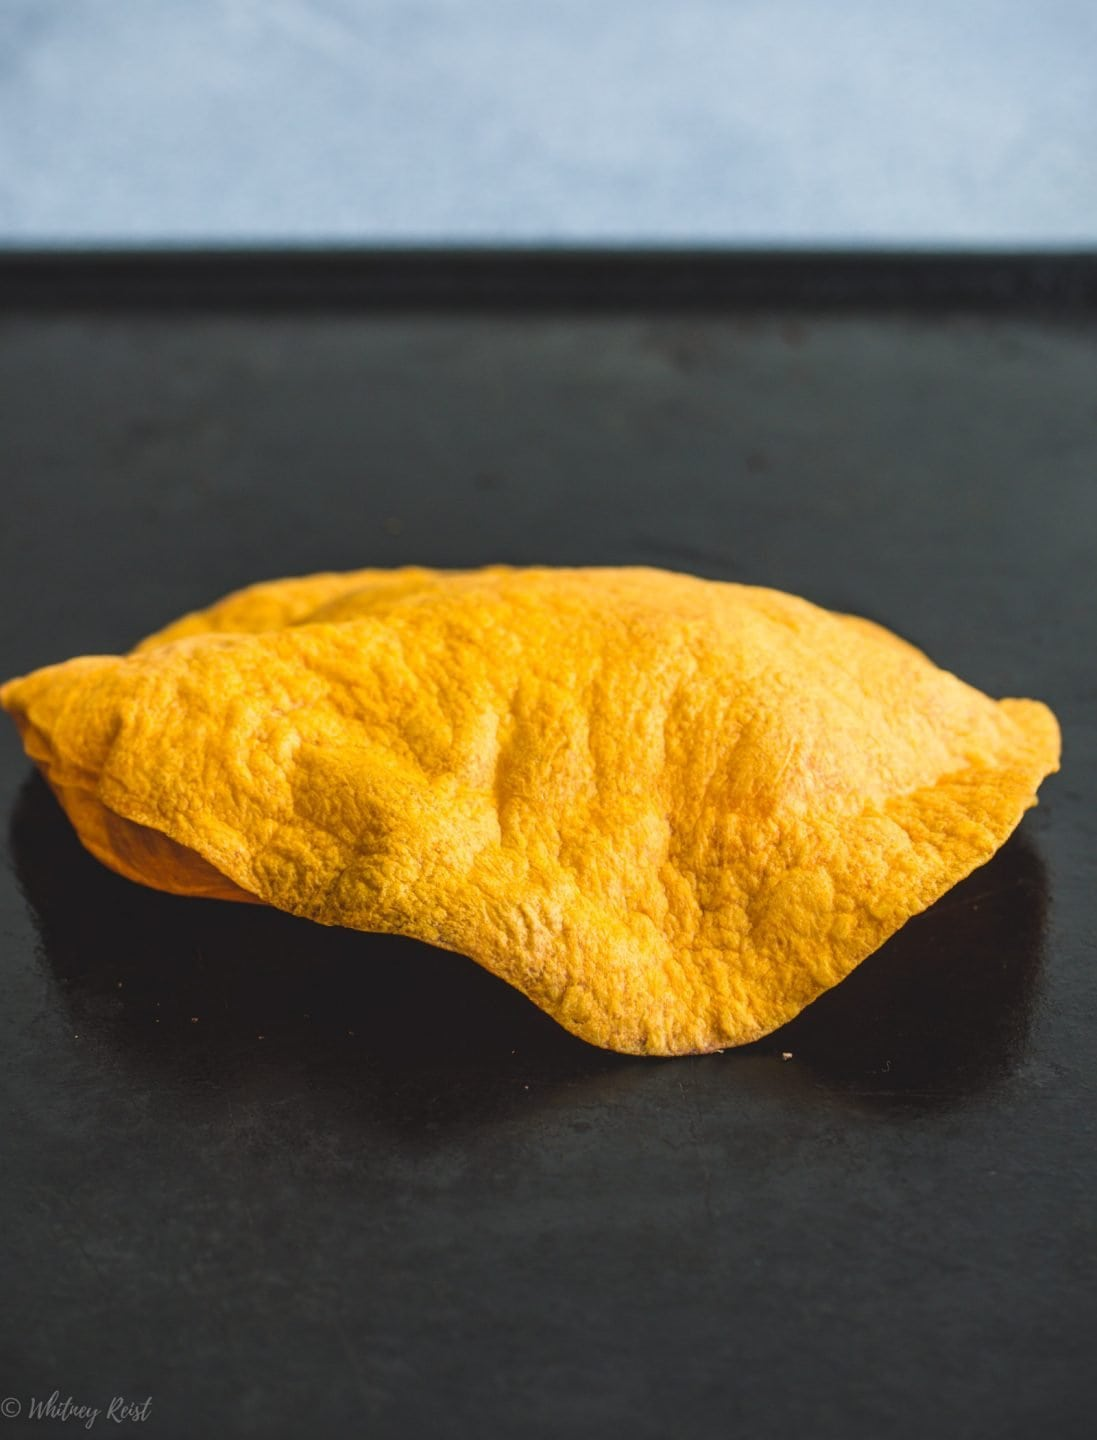 A crispy tortilla on a cooking tray.